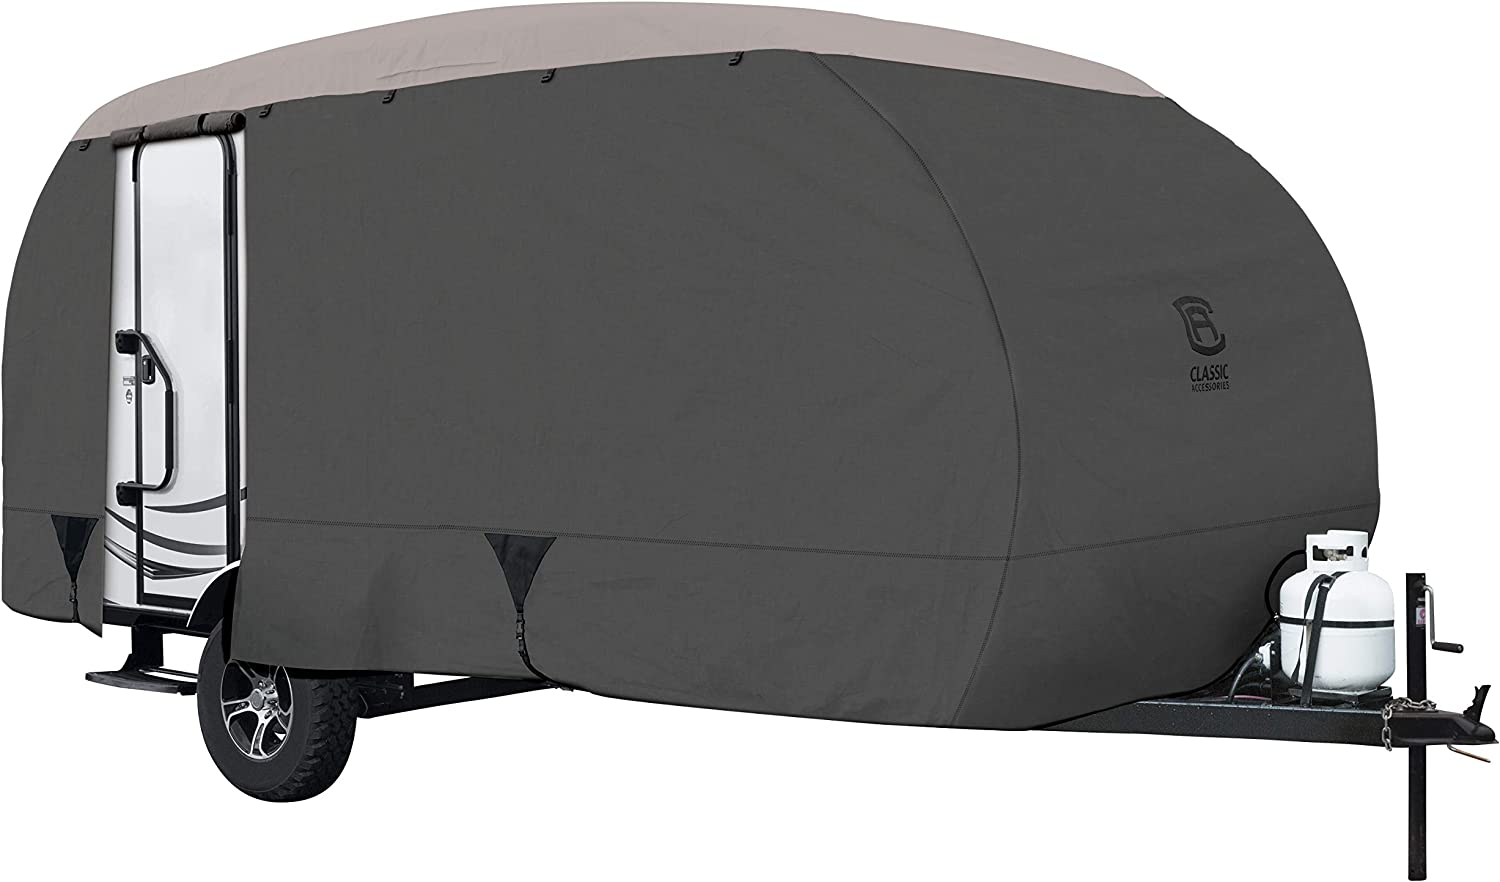 Classic Accessories Trailer Cover 安心の定価販売 80-431-161001-RT オンライン限定商品